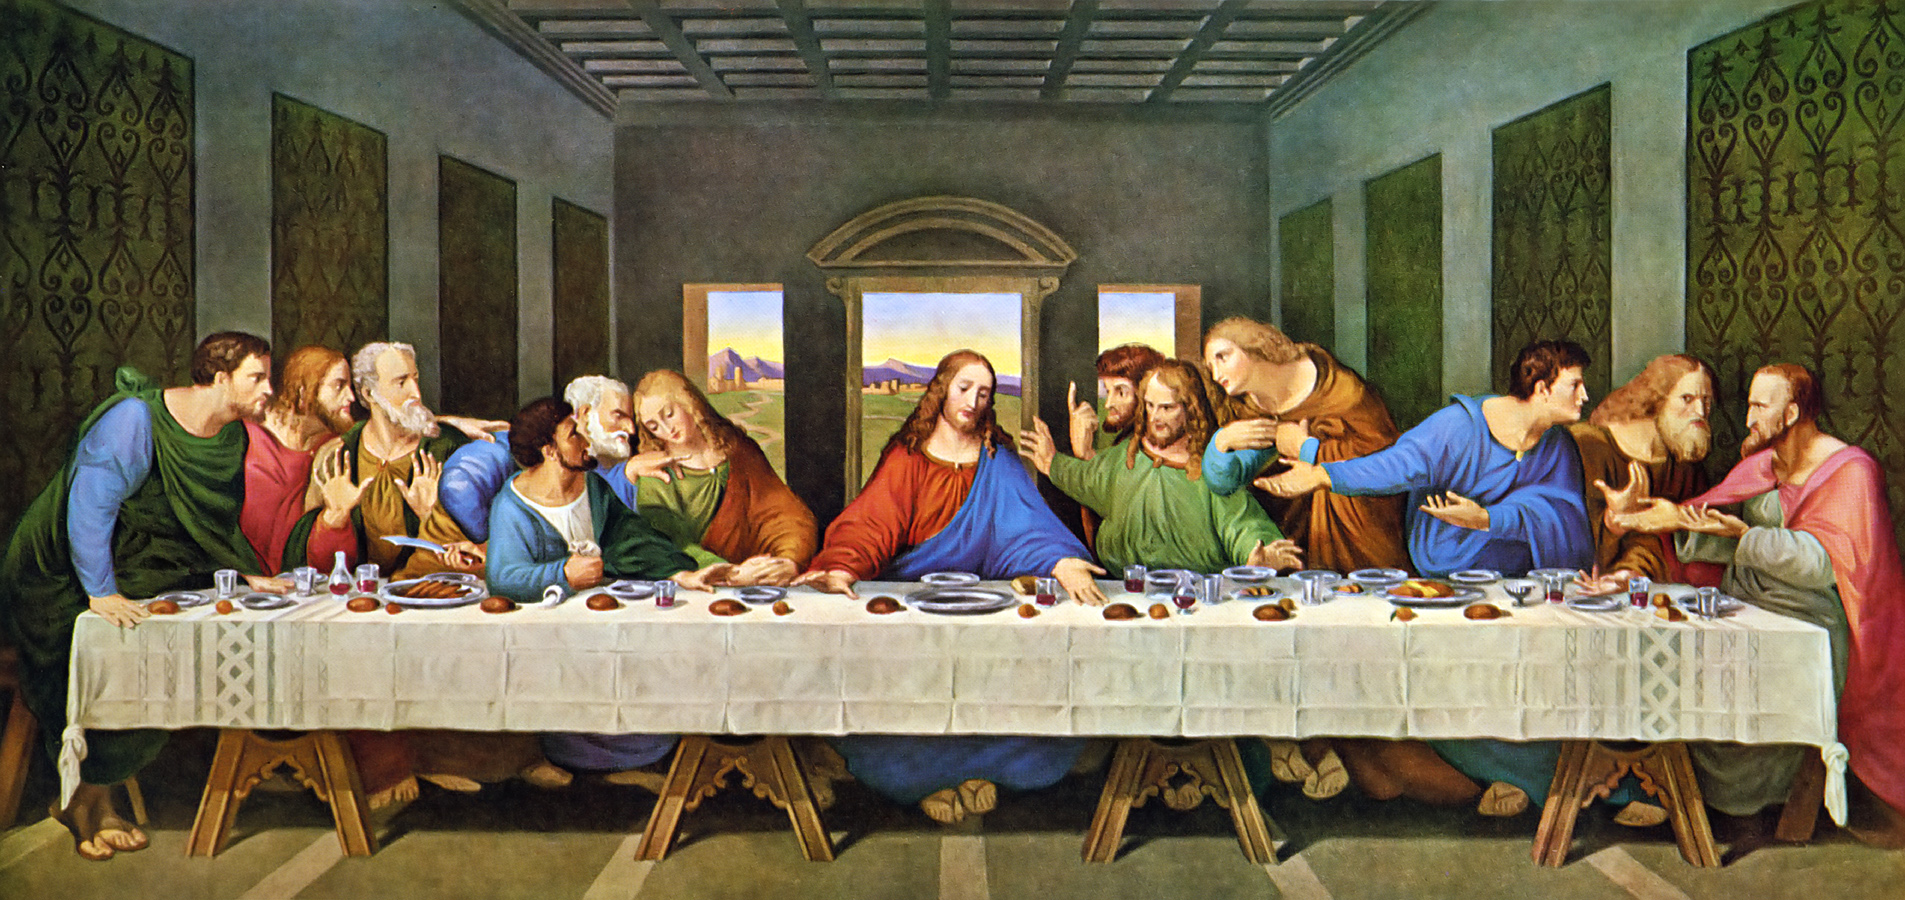 the symbolism of lords hands in the last supper by leonardo da vinci The last supper overview the last supper was created in the late fifteenth-century, between 1494 and 1498, by leonardo da vinci the painting is a mural painting in the refectory of the convent of santa maria delle grazie, milan the painting is 181 inches by 346 inches and was made with tempera on gresso, pitch.